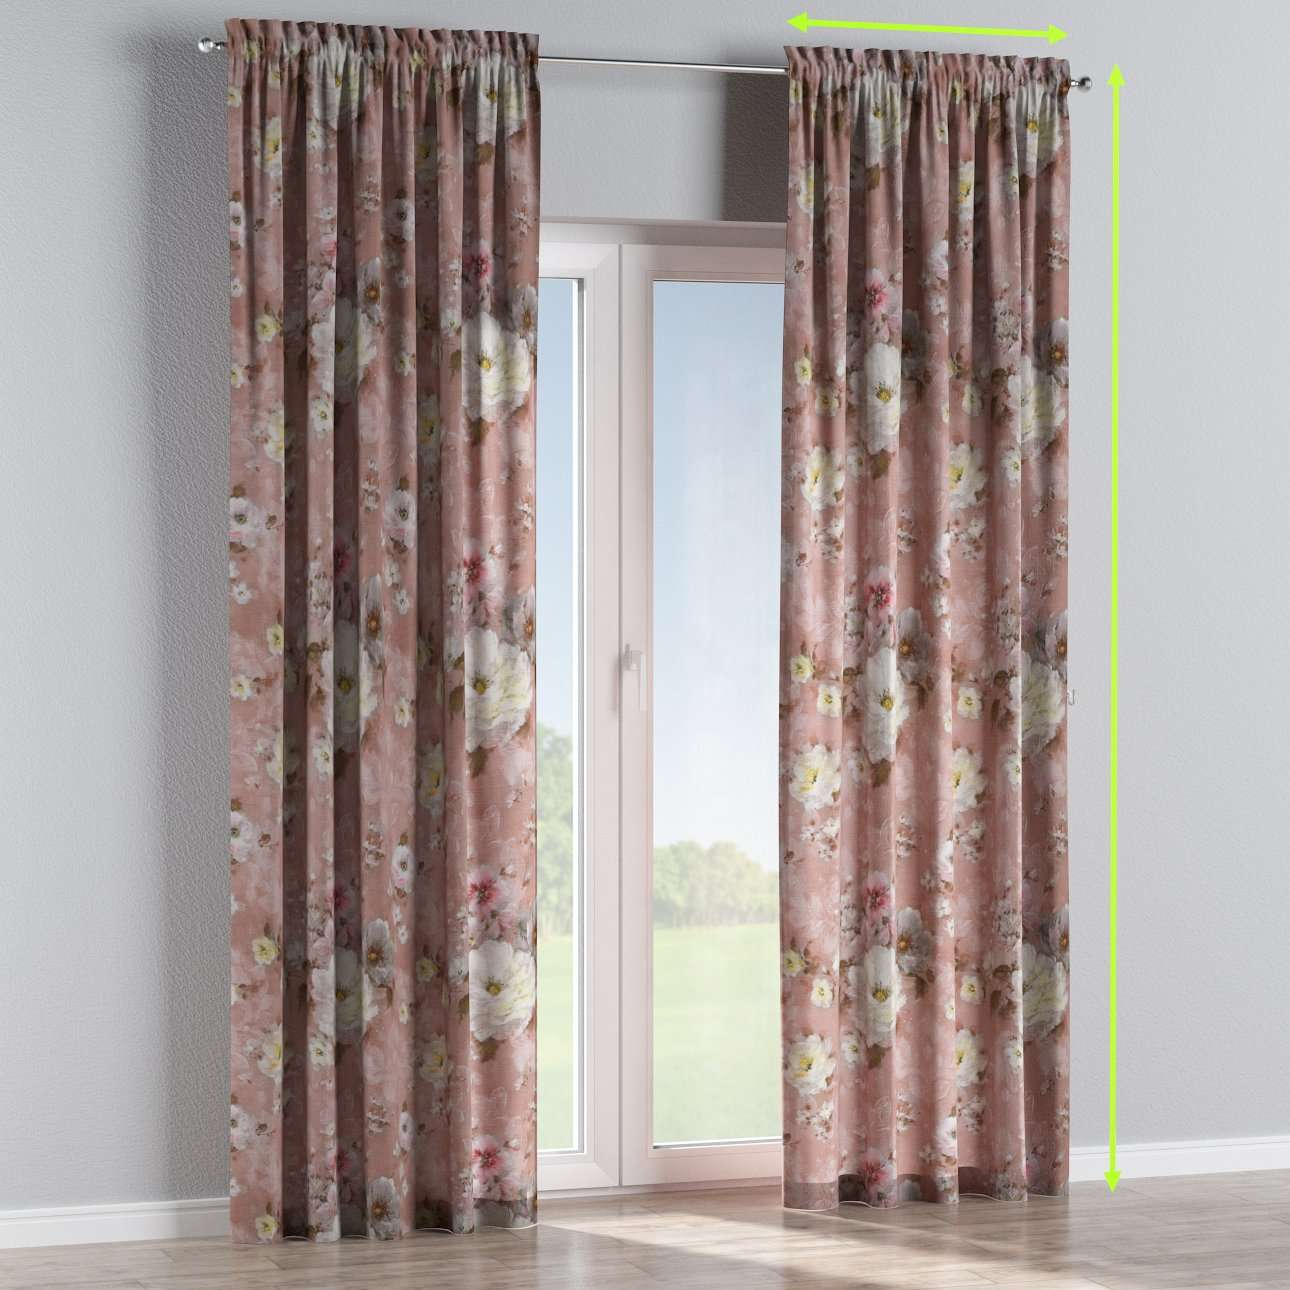 Slot and frill lined curtains in collection Monet, fabric: 137-83